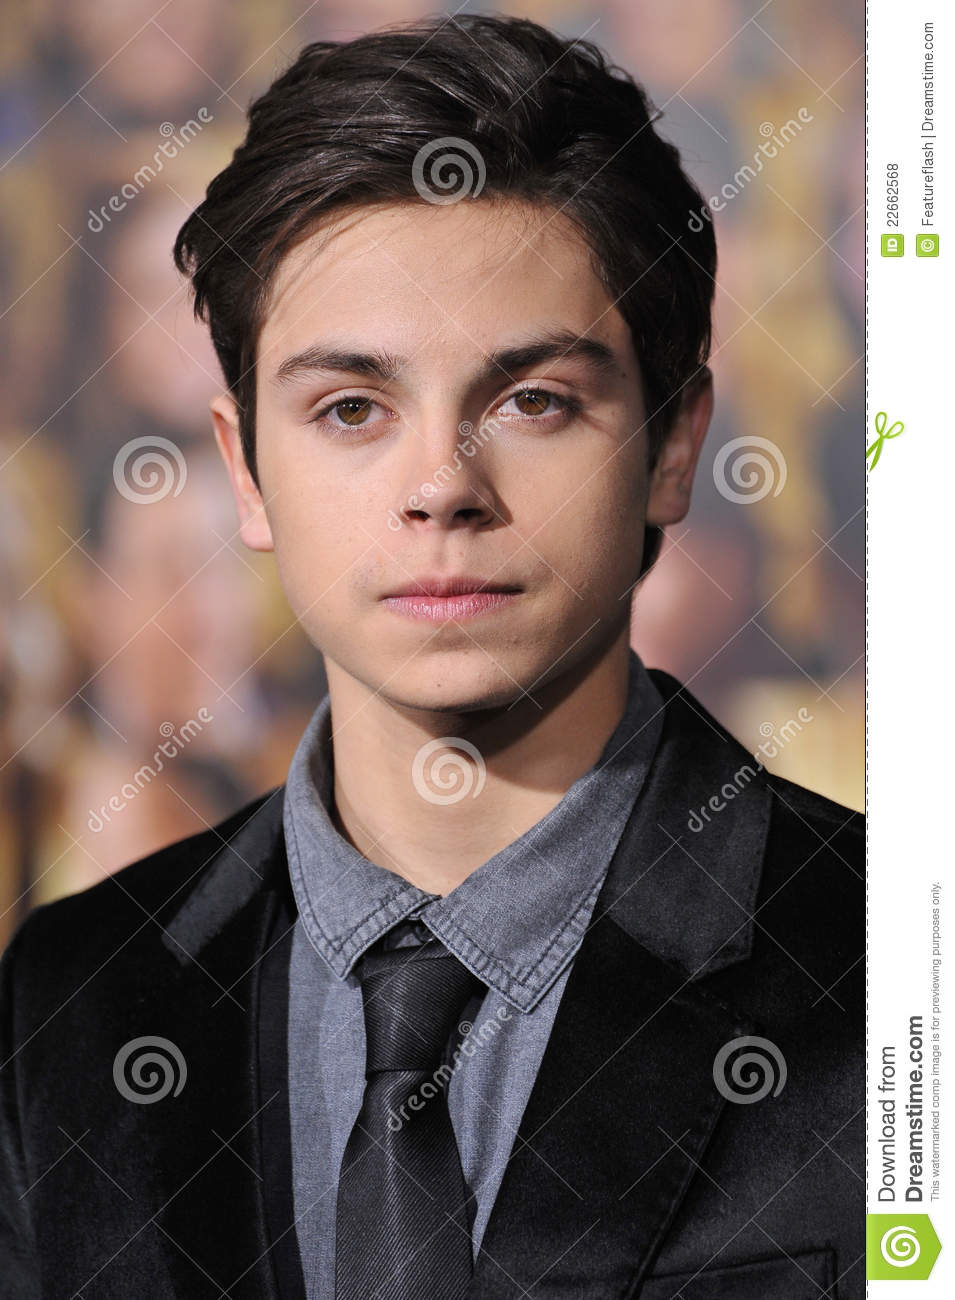 jake t austin movies - photo #35